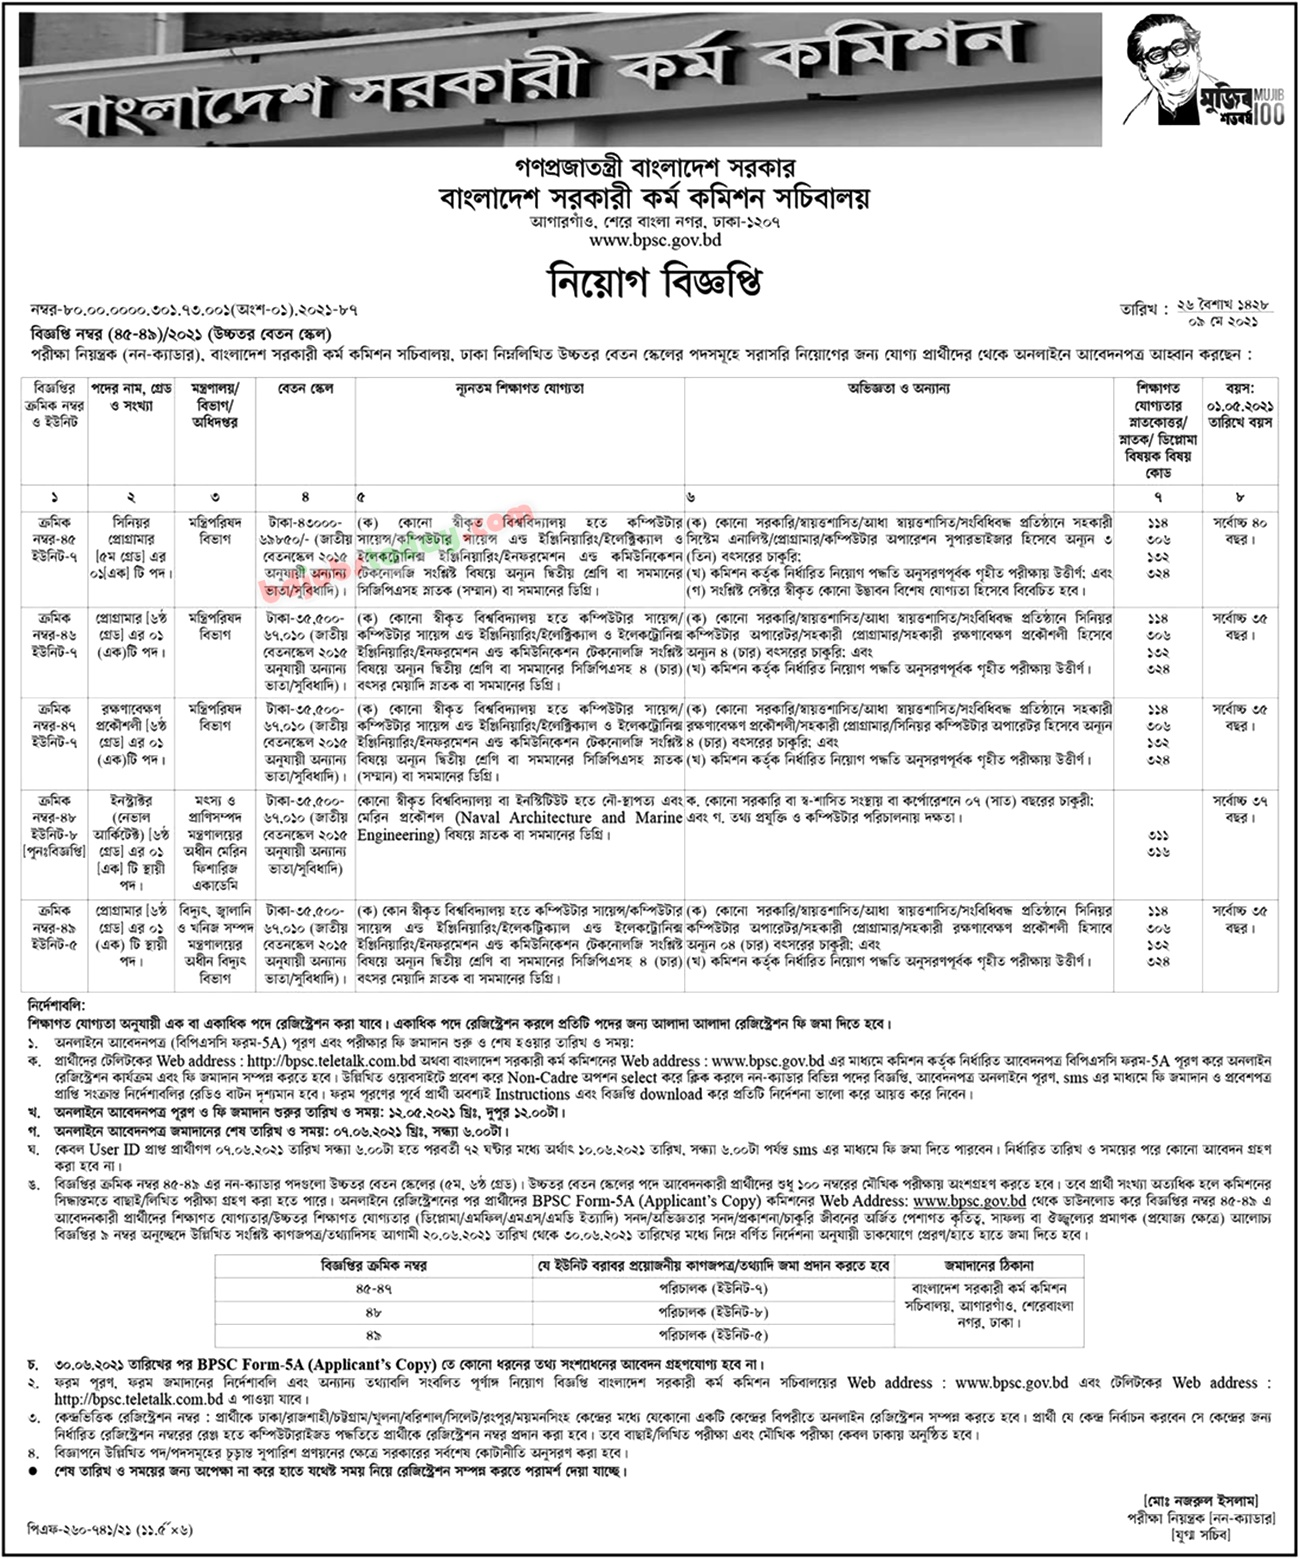 Image of the BPSC 2021 employment circular / PDF download